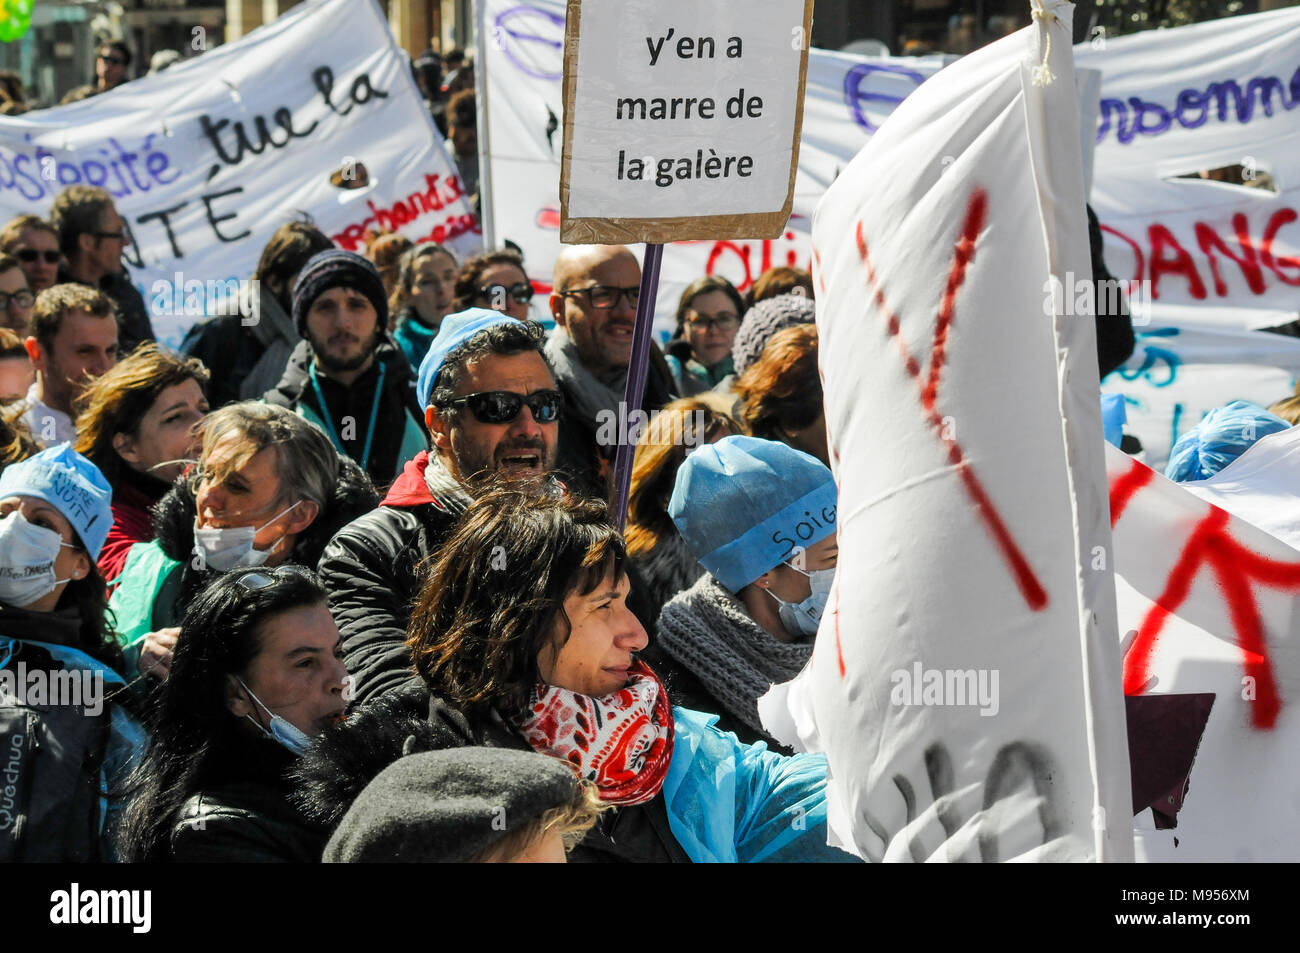 Protesters march against French government's string of reforms, Lyon, France - Stock Image